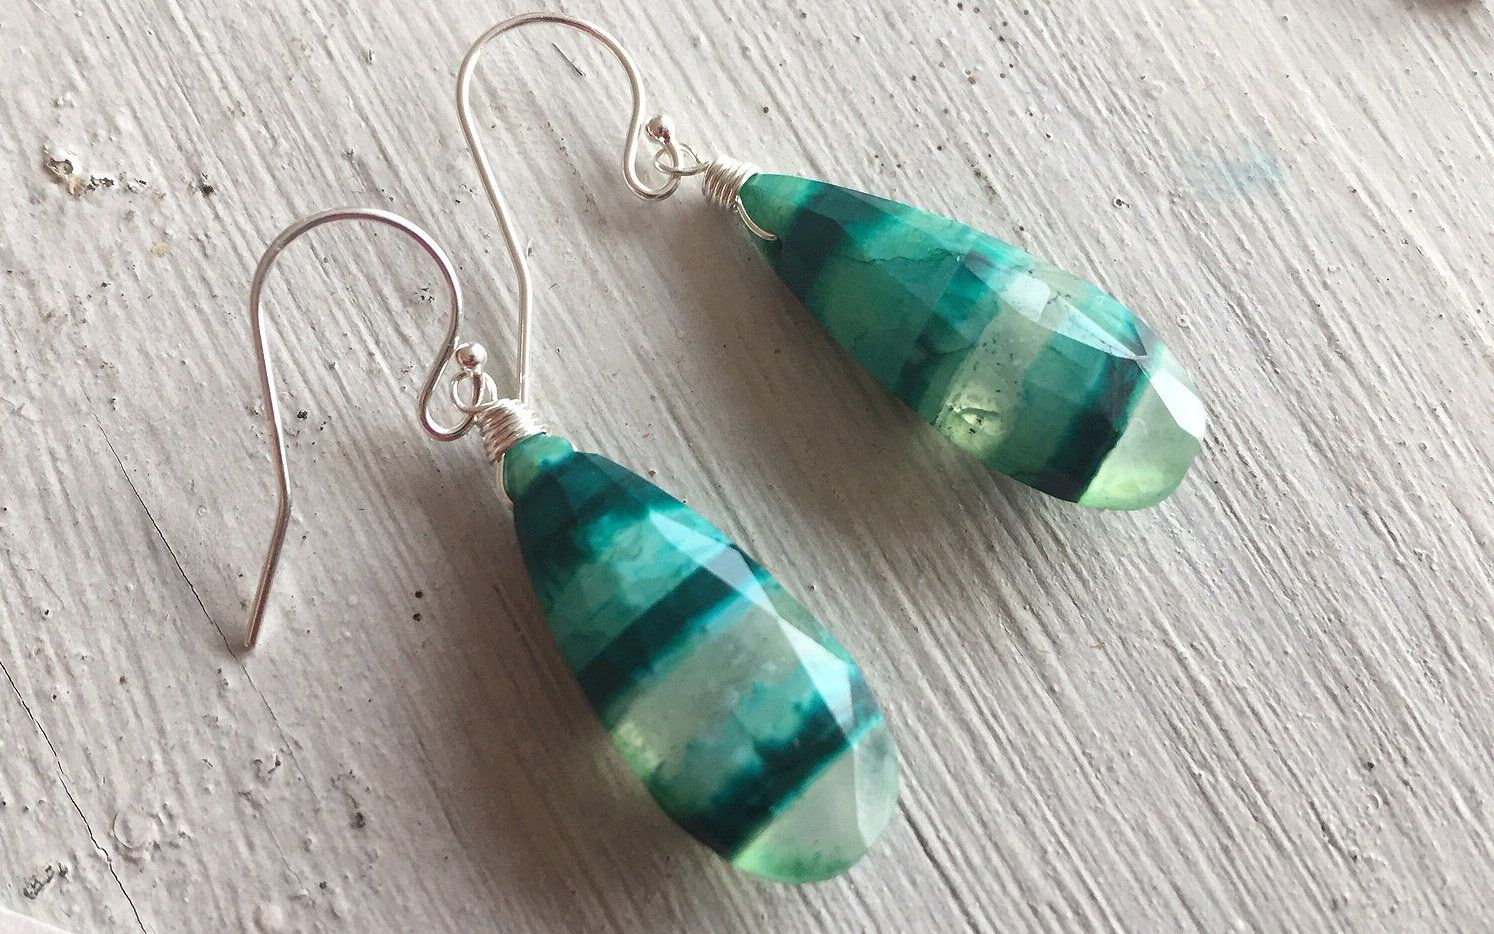 Best 12 These are fun and colorful lab created bead grade Boulder Opals in Blue and Green hues. All pieces are One of